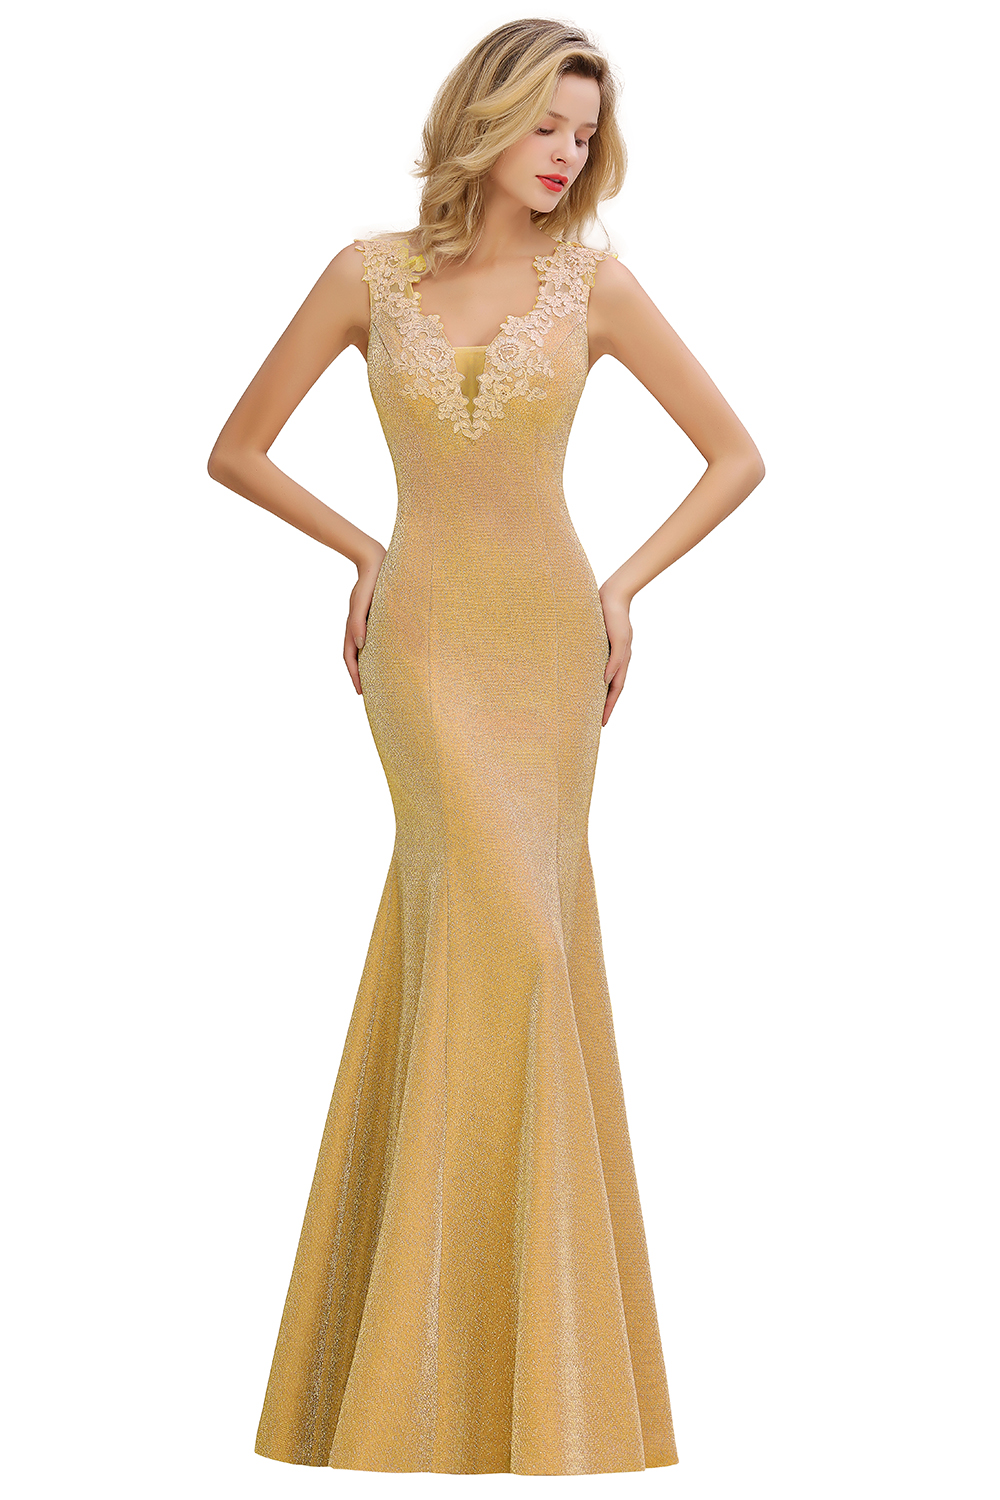 BMbridal Dusty Pink Shinning Long Prom Dress Mermaid With Appliques